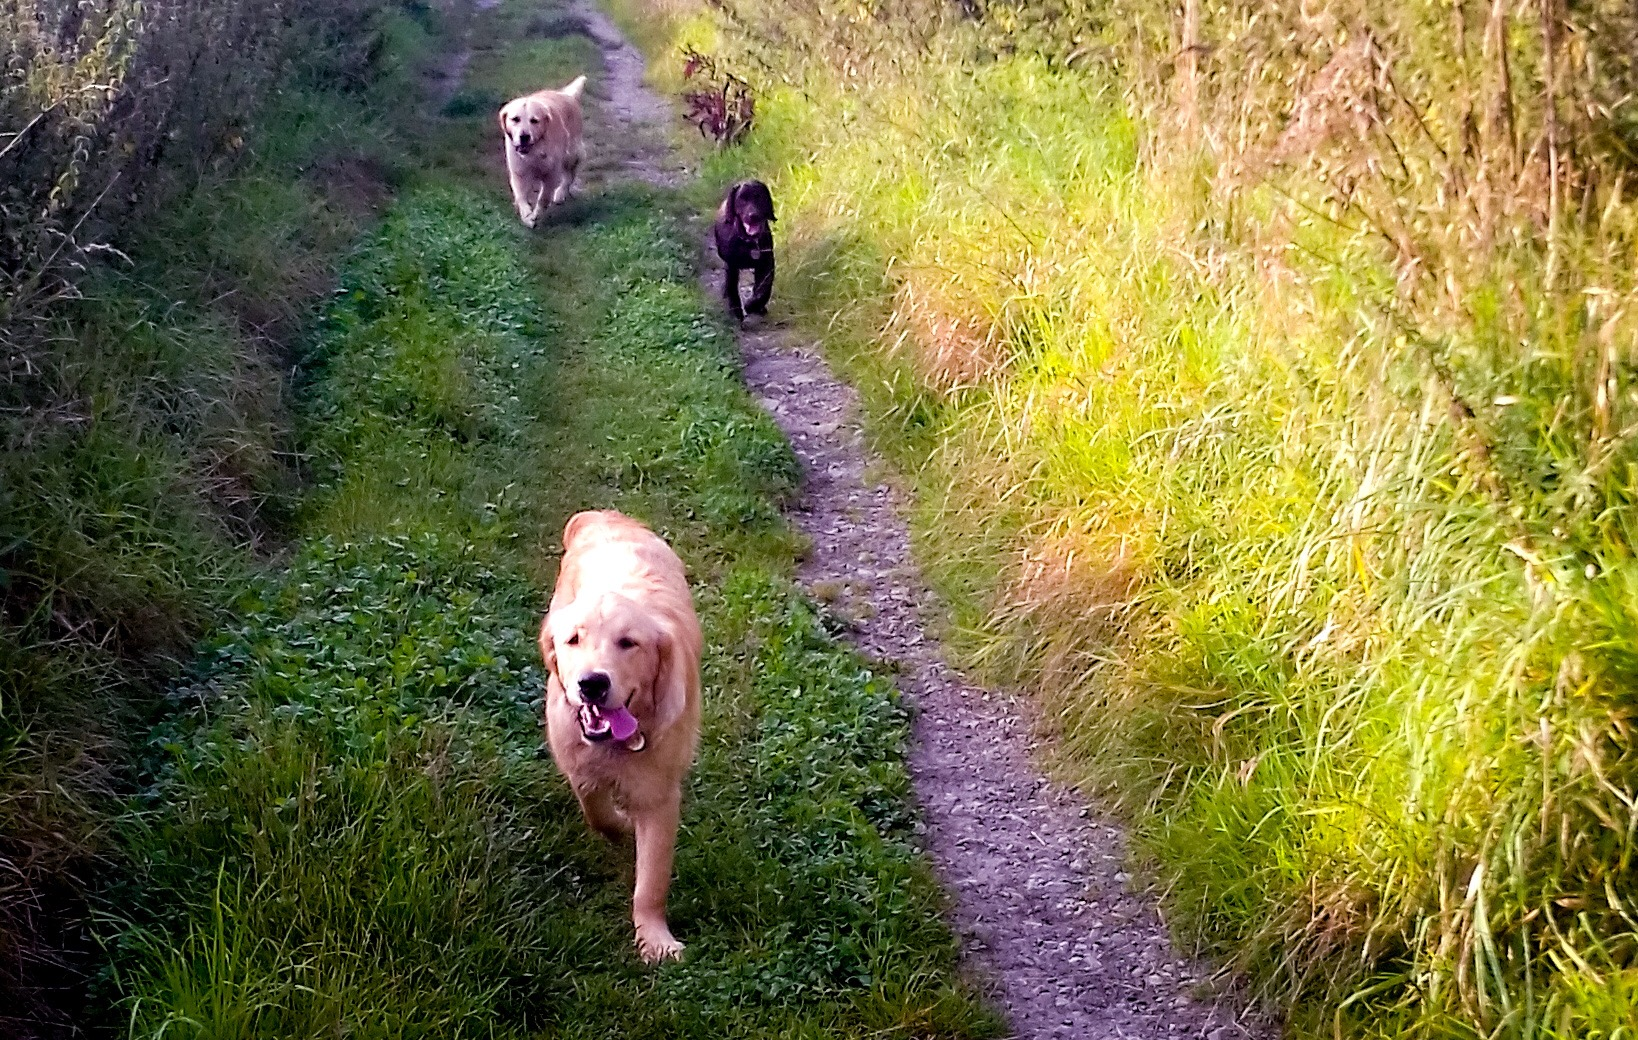 Lottie and Clara enjoying a walk with Digby on their holiday.